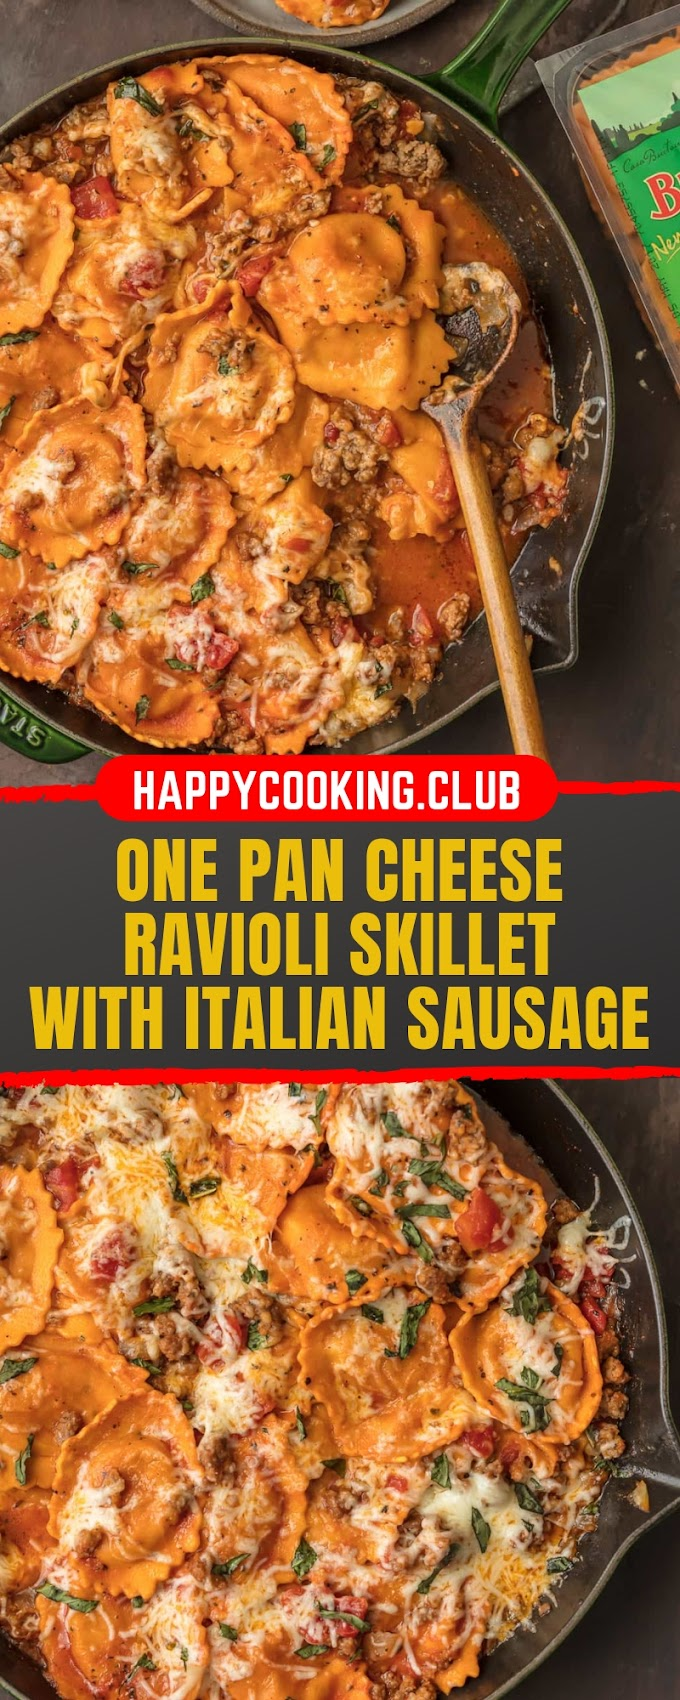 ONE PAN CHEESE RAVIOLI SKILLET WITH ITALIAN SAUSAGE